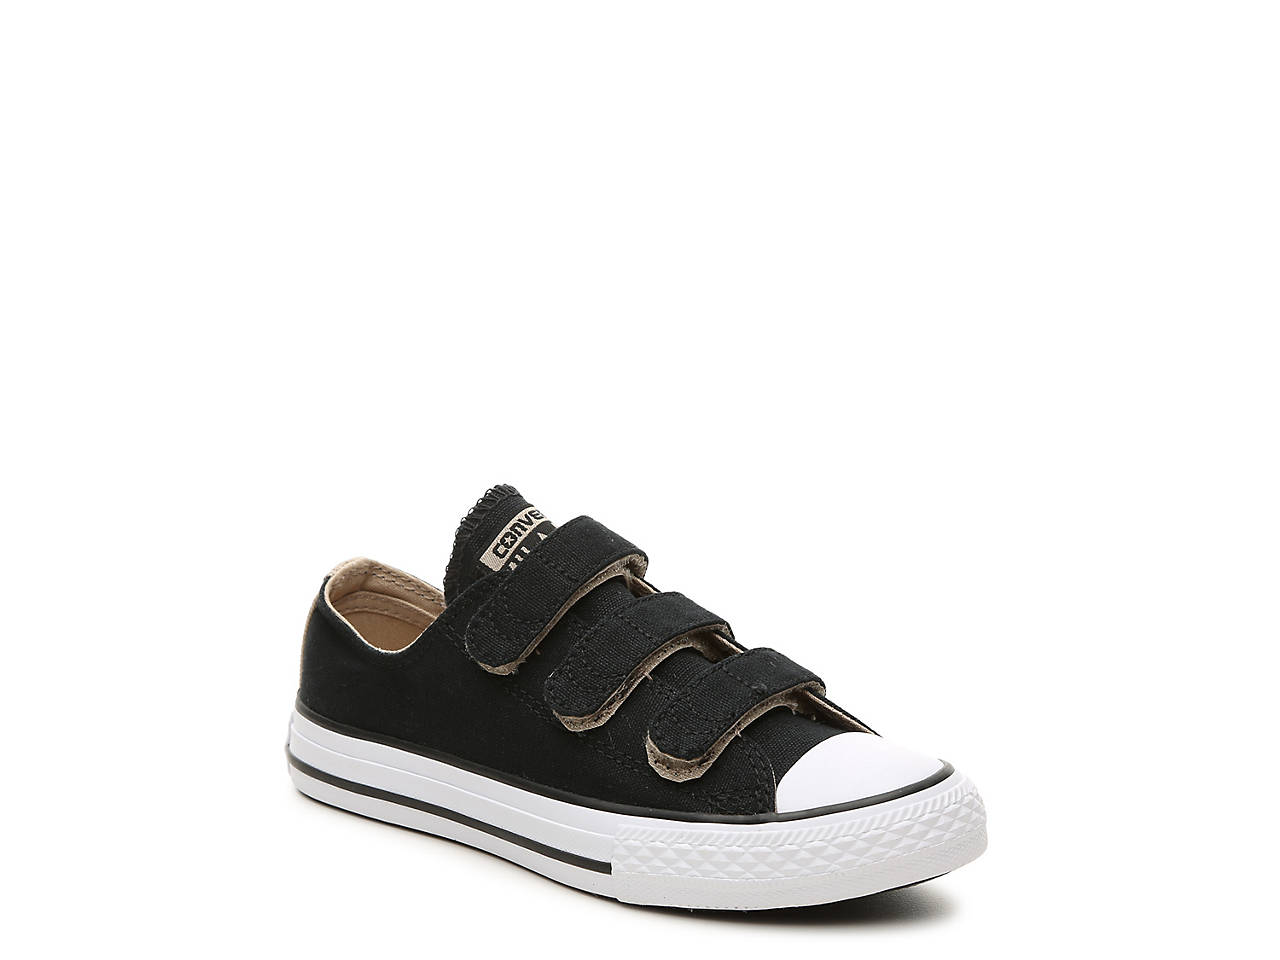 77beb579dc89 Converse Chuck Taylor All Star 3V Toddler   Youth Sneaker Kids Shoes ...